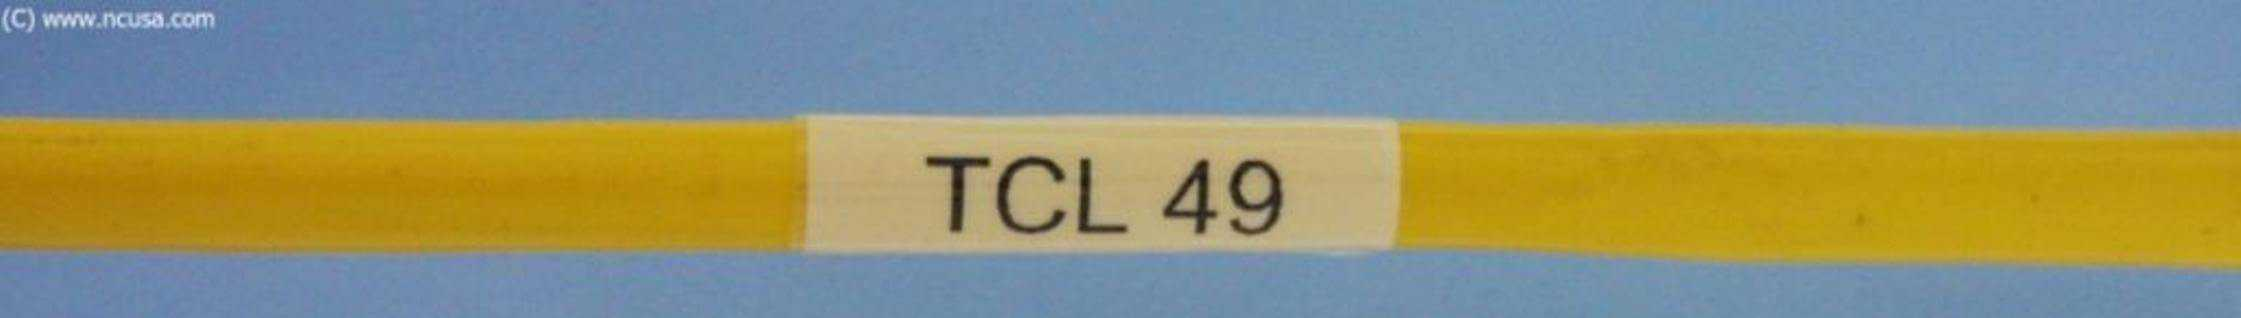 cable labels TCL-49